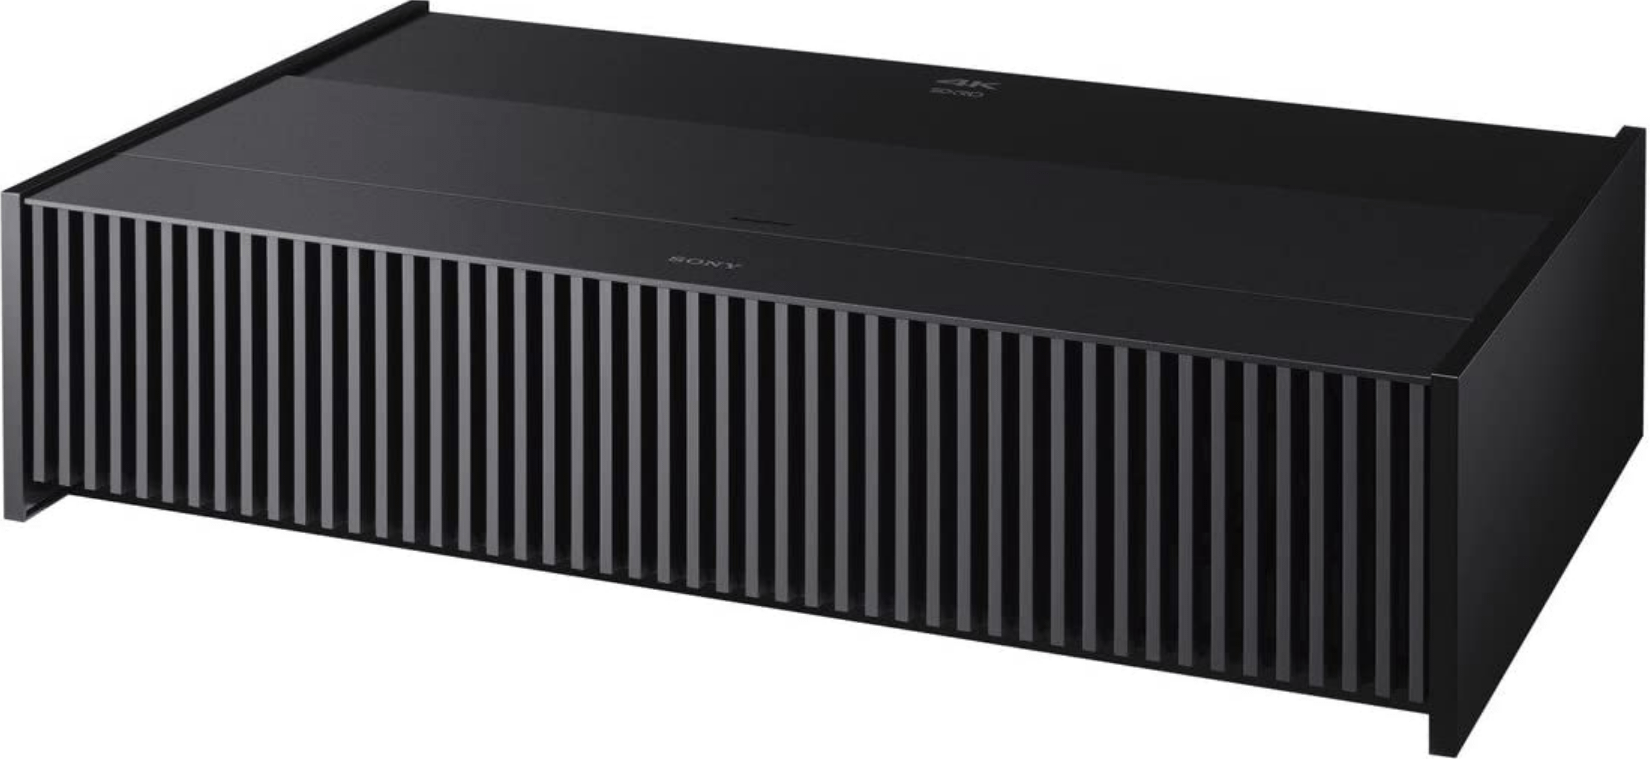 Sony Ultra-Short Throw 4K SXRD Home Theater Projector